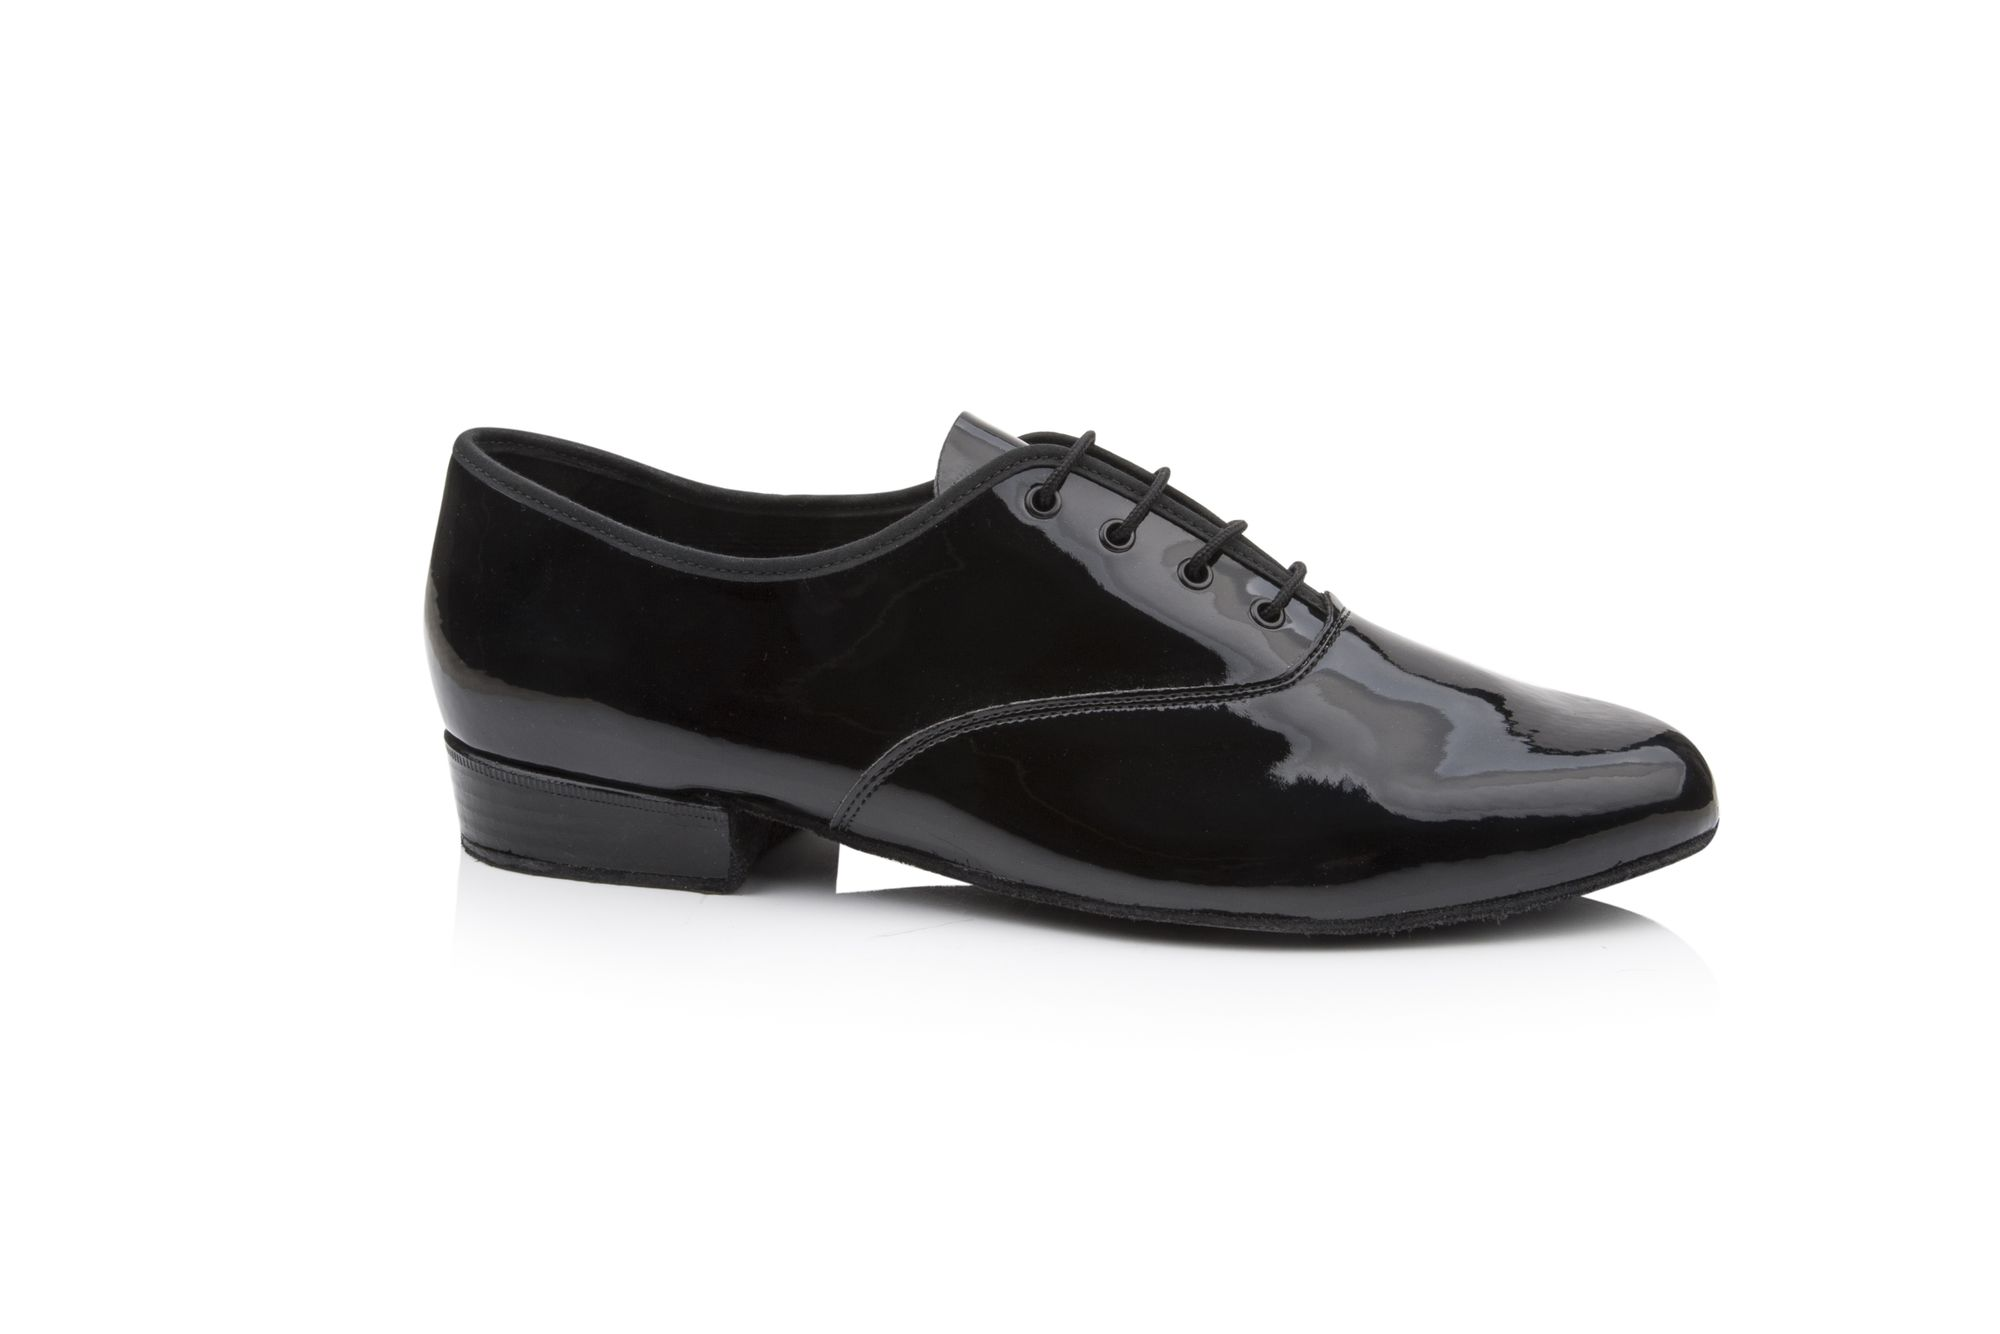 Freed Boys MPB in Black Patent